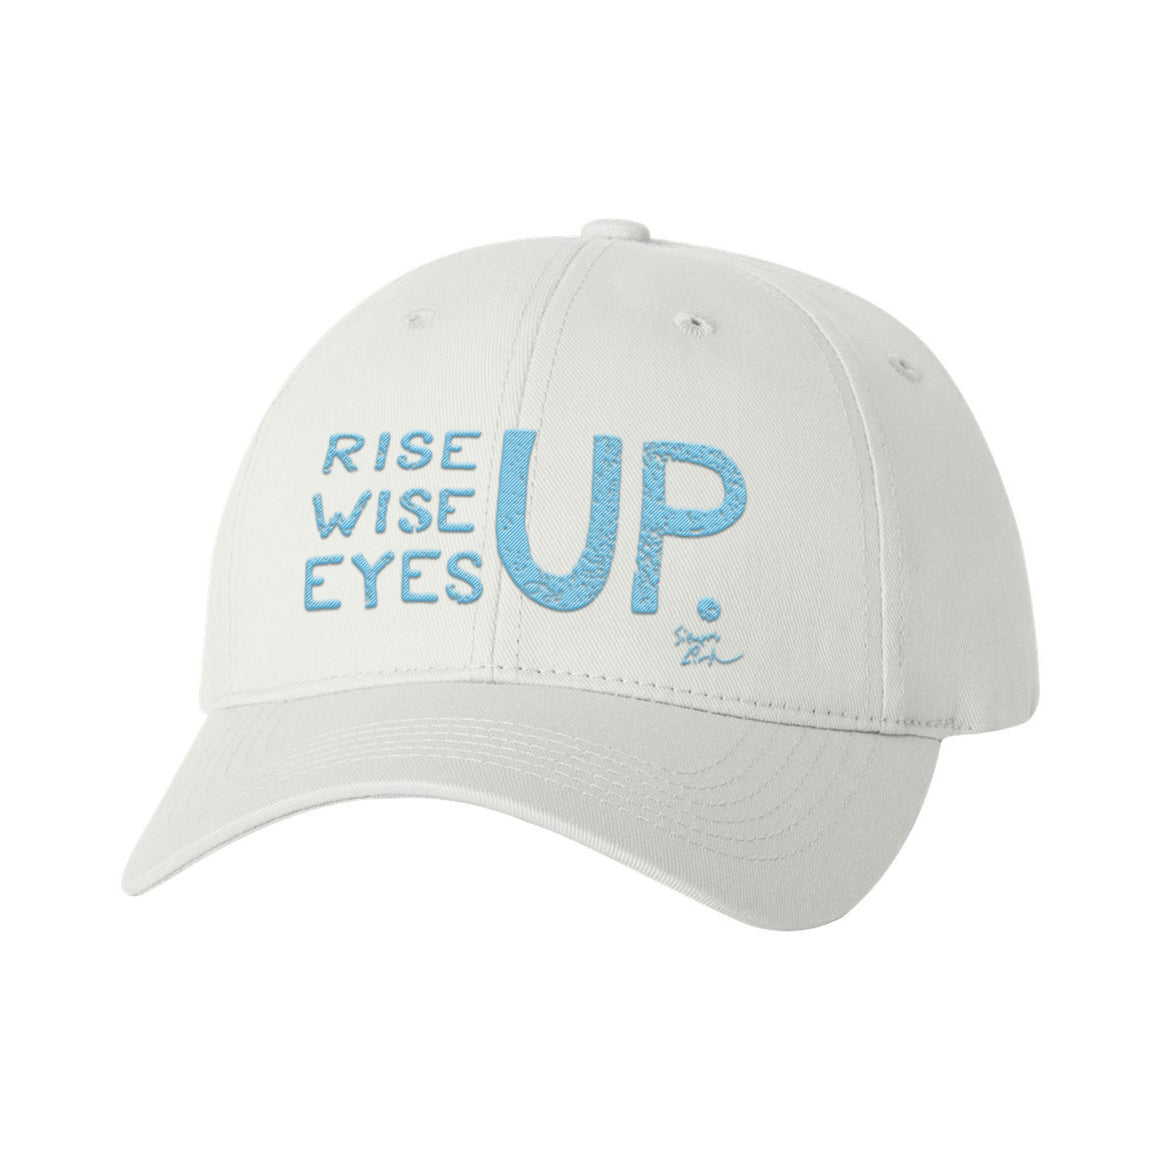 Rise Up, Wise Up, Eyes Up - Light Blue - Baseball Cap